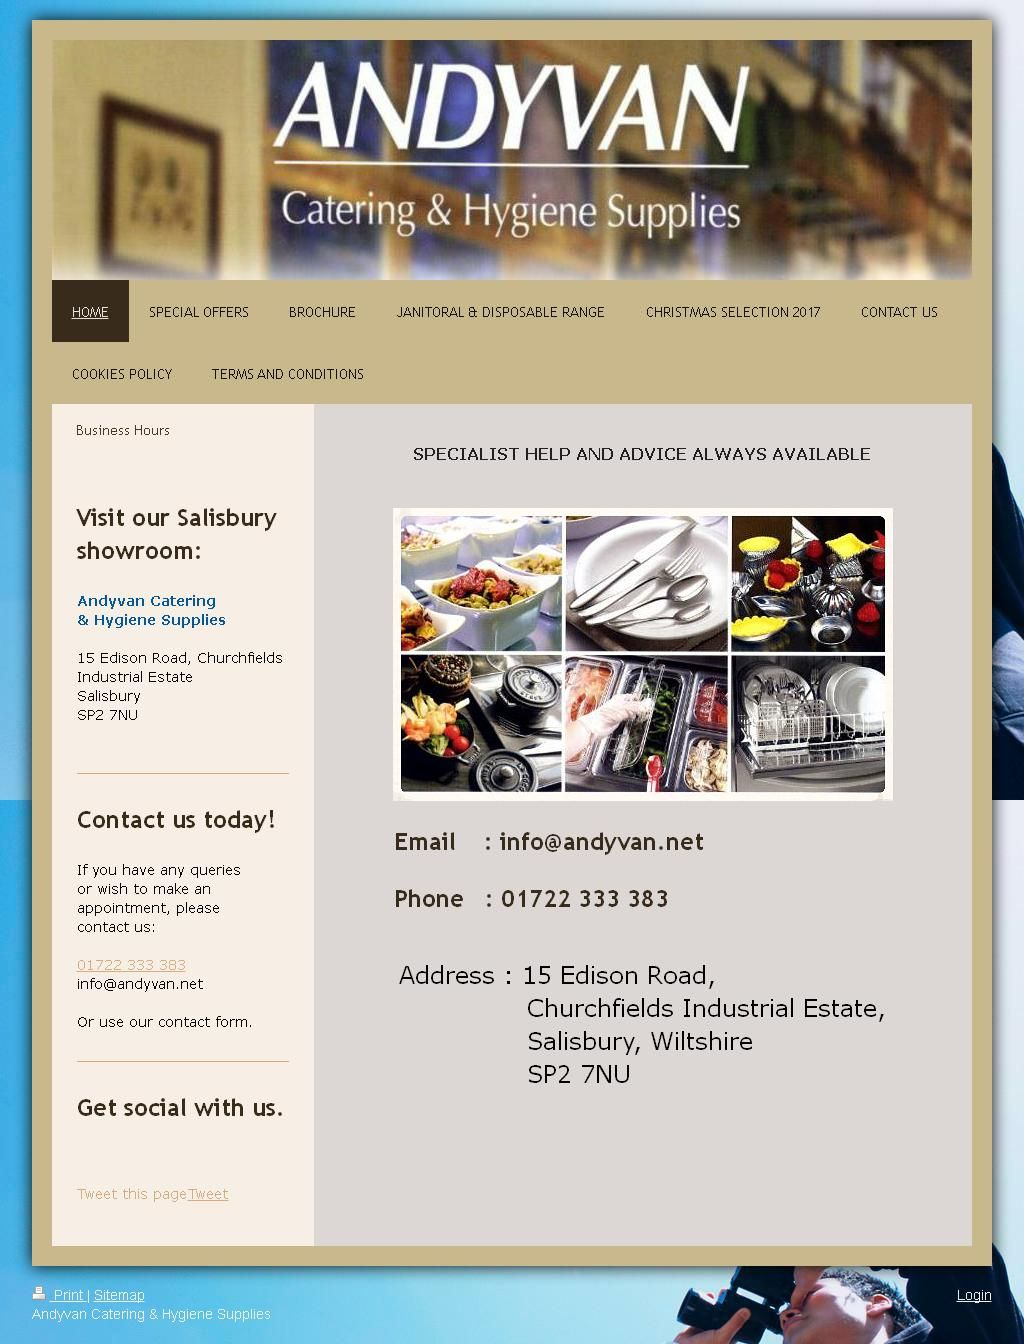 Andyvan Catering & Hygiene Supplies Catering Equipment 15